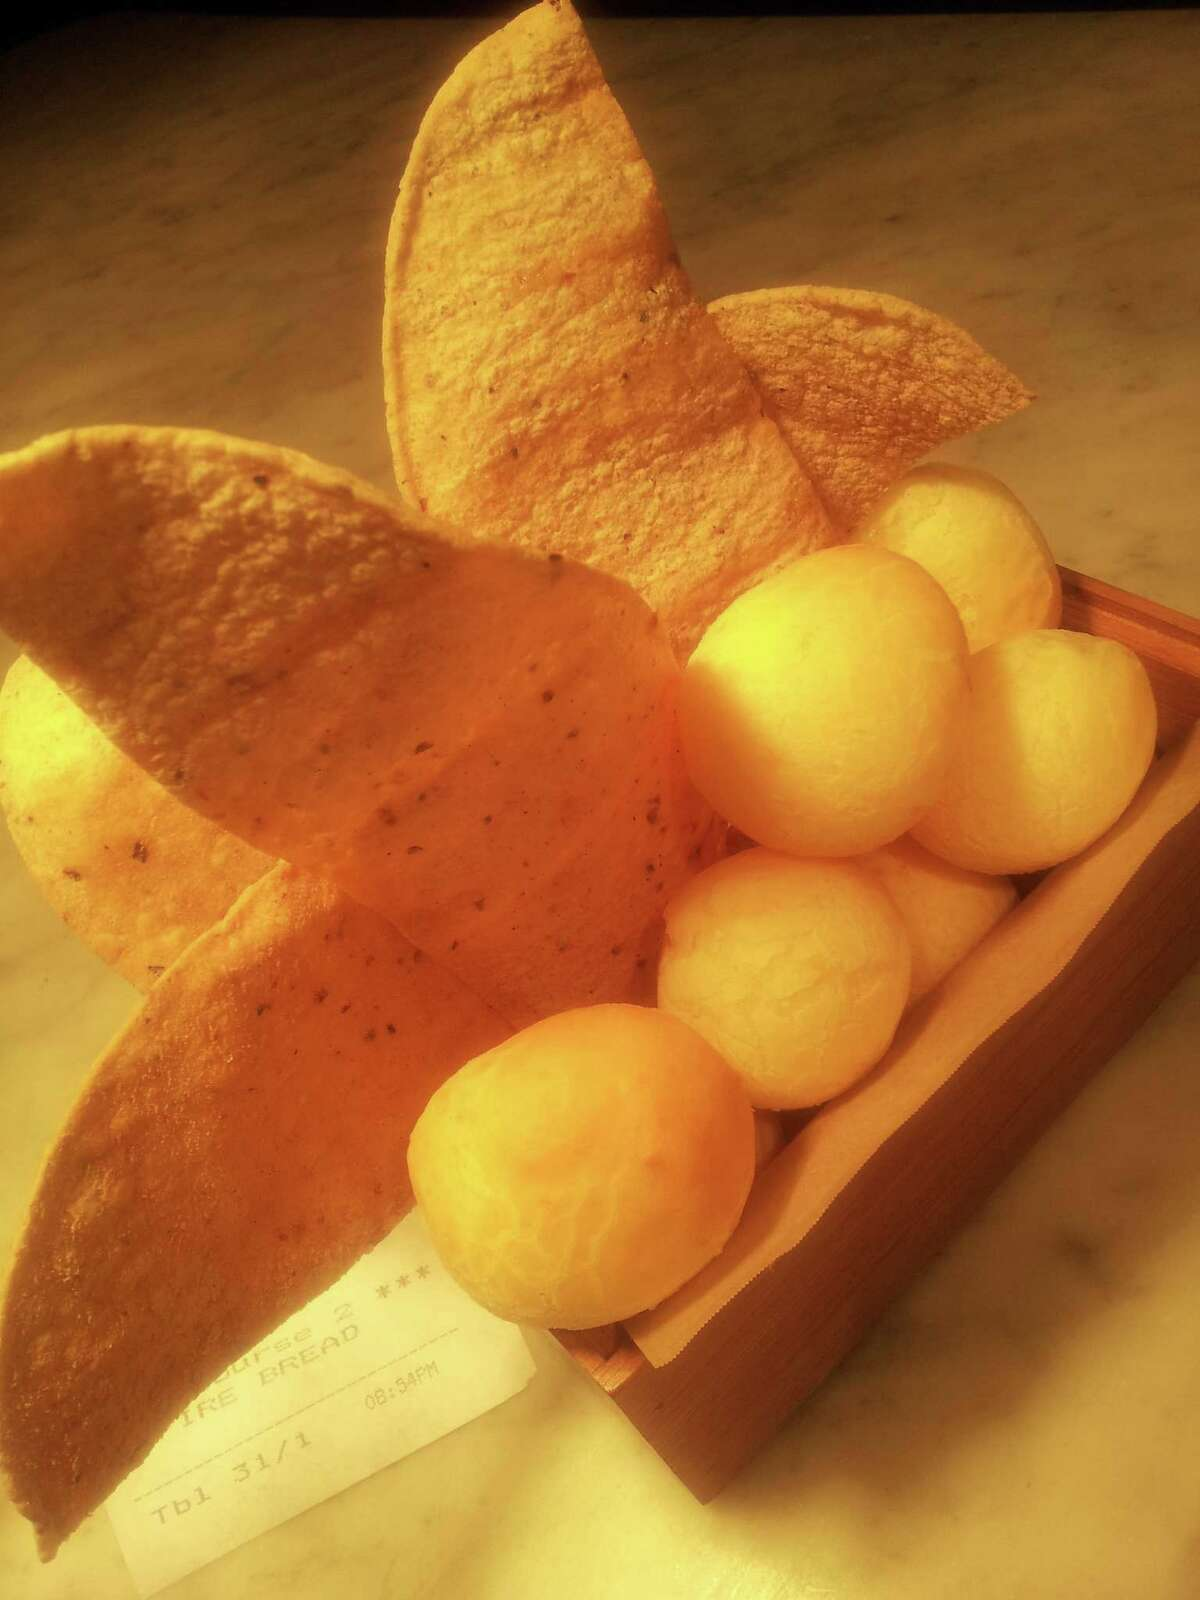 Pão de queijo (Brazilian cheese bread) is served at Nao, at the Culinary Institute of America, San Antonio.